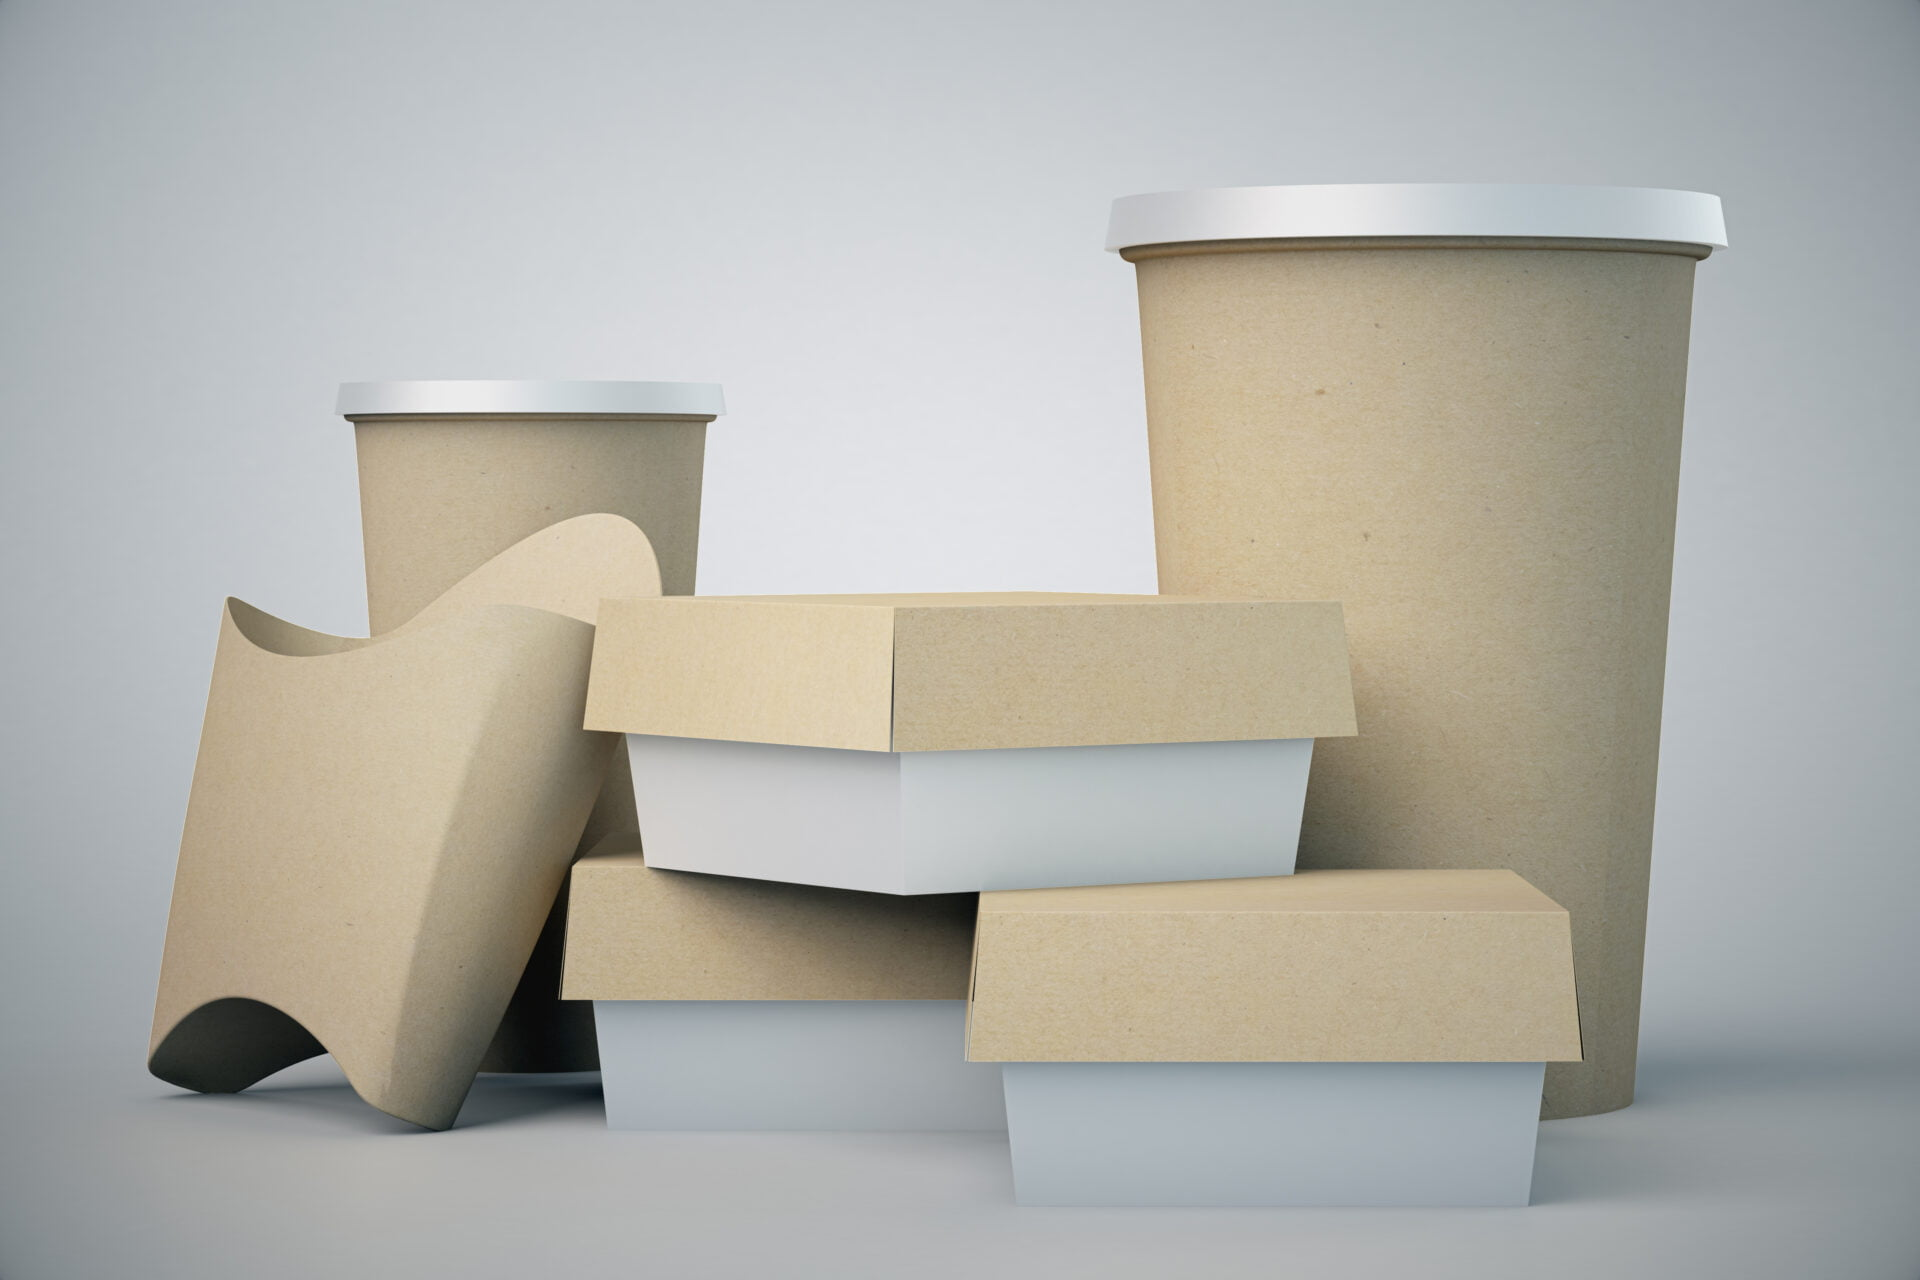 Food packaging without logos